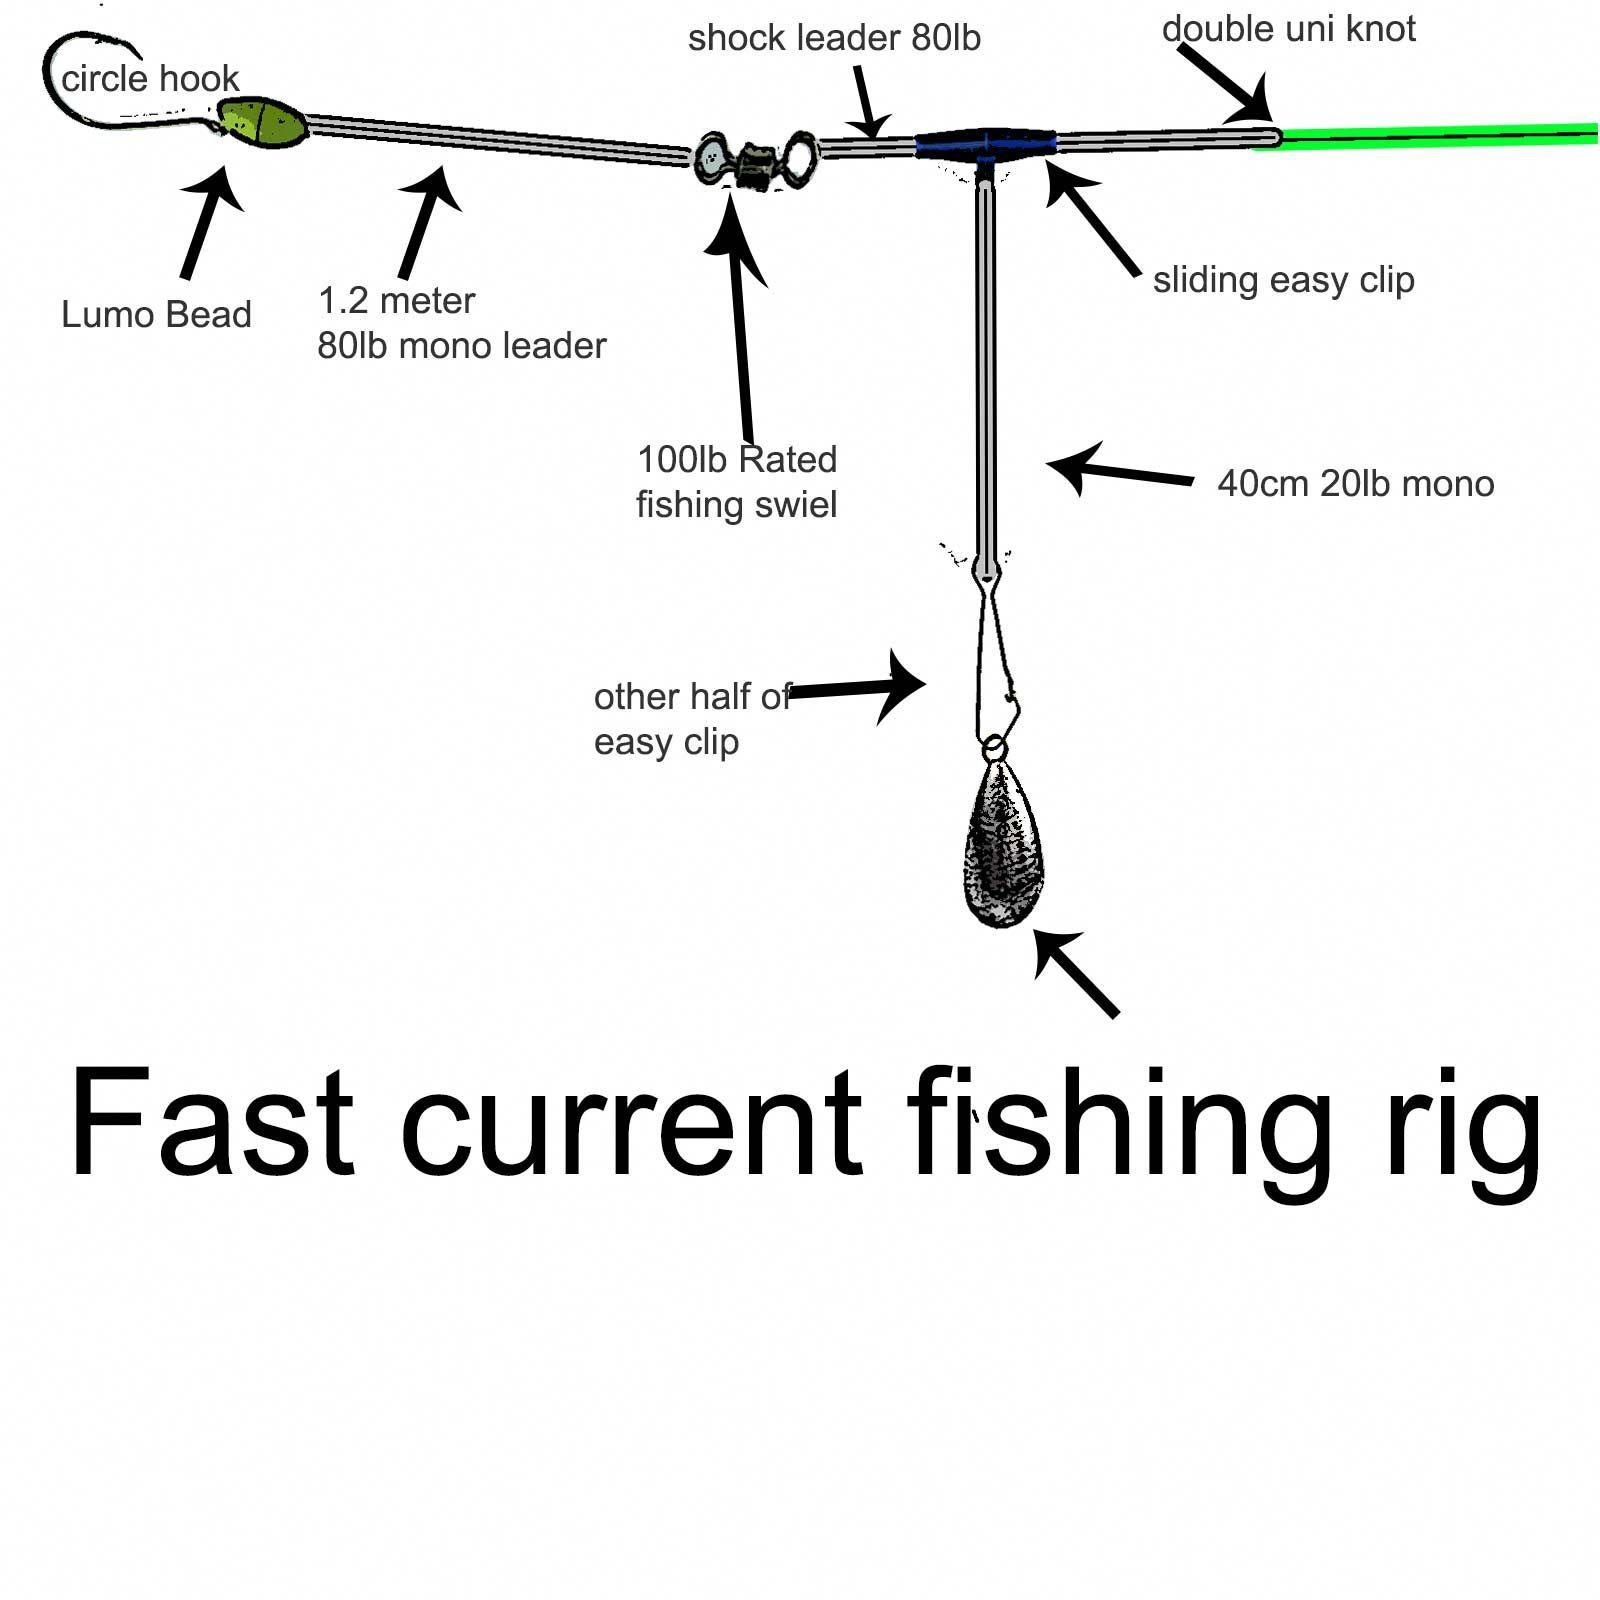 hight resolution of shark rig diagram wiring library diagram a2 daytime swordfish rig diagram fast current fishing rig diagram